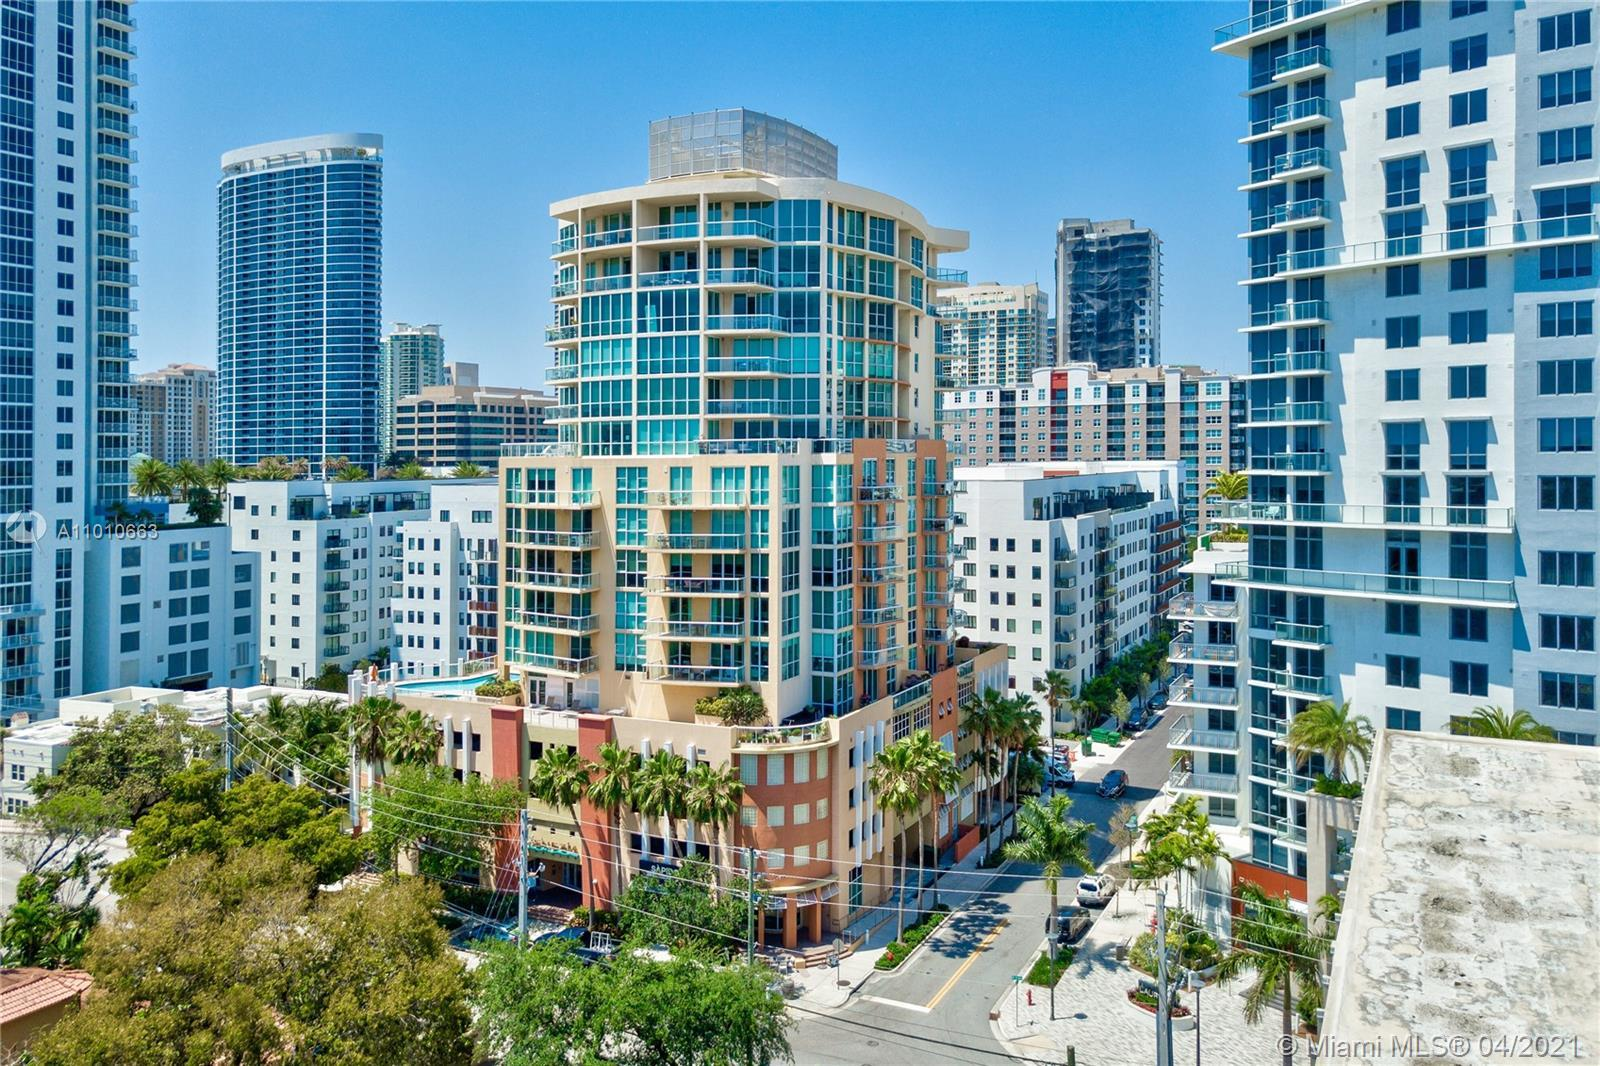 LAS OLAS LUXURY BOUTIQUE CONDO  1 bedroom+Den with 2 full baths. It can easily be converted to a 2 B